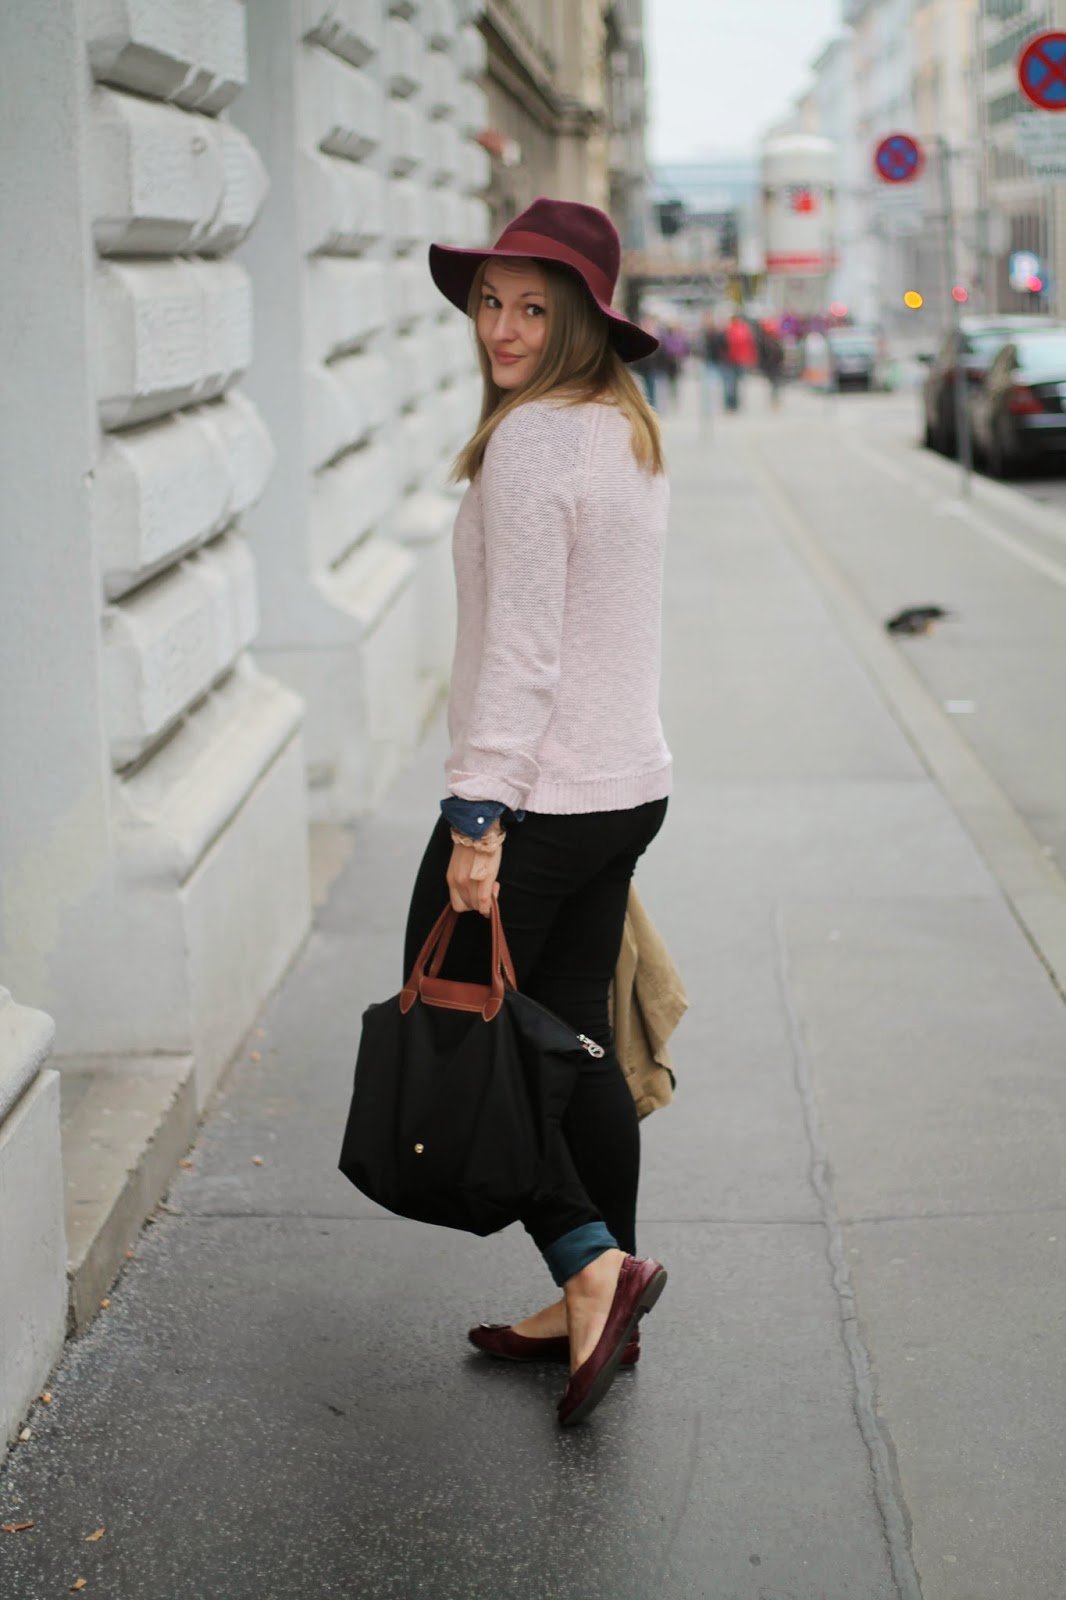 Fashionblogger Austria / Österreich / Deutsch / German / Kärnten / Carinthia / Klagenfurt / Köttmannsdorf / Spring Look / Classy / Edgy / Autumn / Autumn Style 2014 / Autumn Look / Fashionista Look / Rose Sweater Rosa Pullover Forever 21 / Jeans Blous Clockhouse C&A / Black Skinny Jeans Schwarze Hose Zara / Red Bordeaux Tory Burch Flats Ballerinas / Red Bordeaux Hat Hut Forever 21 / Trenchcoat Takko / Schwarze Longchamp Le Pliage Bag Tasche Black / Statement Necklace Oasap / Daniel Wellington Watch /